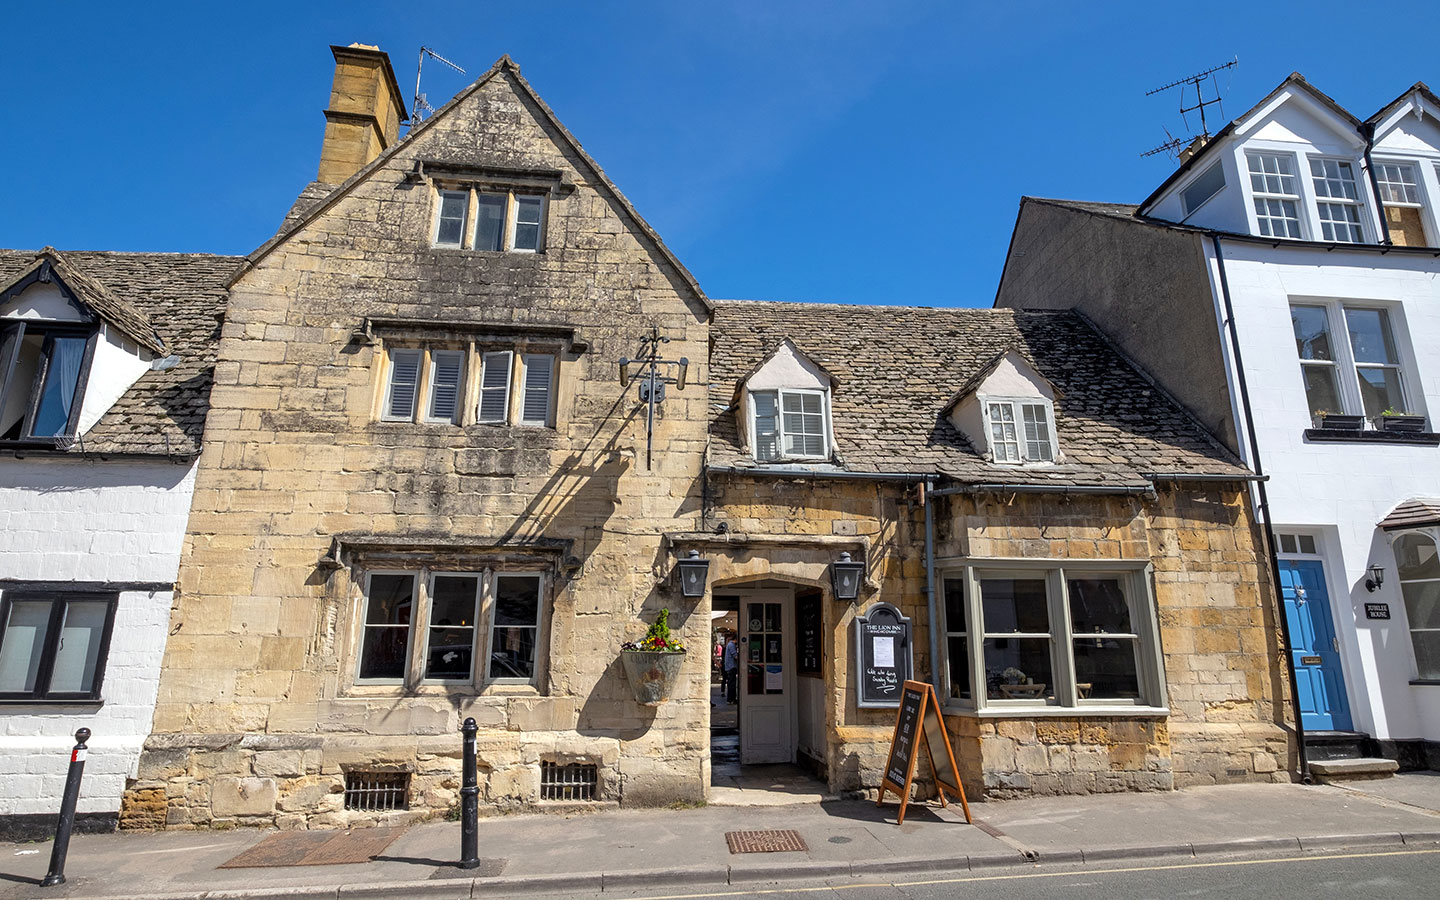 The Lion Inn in Winchcombe